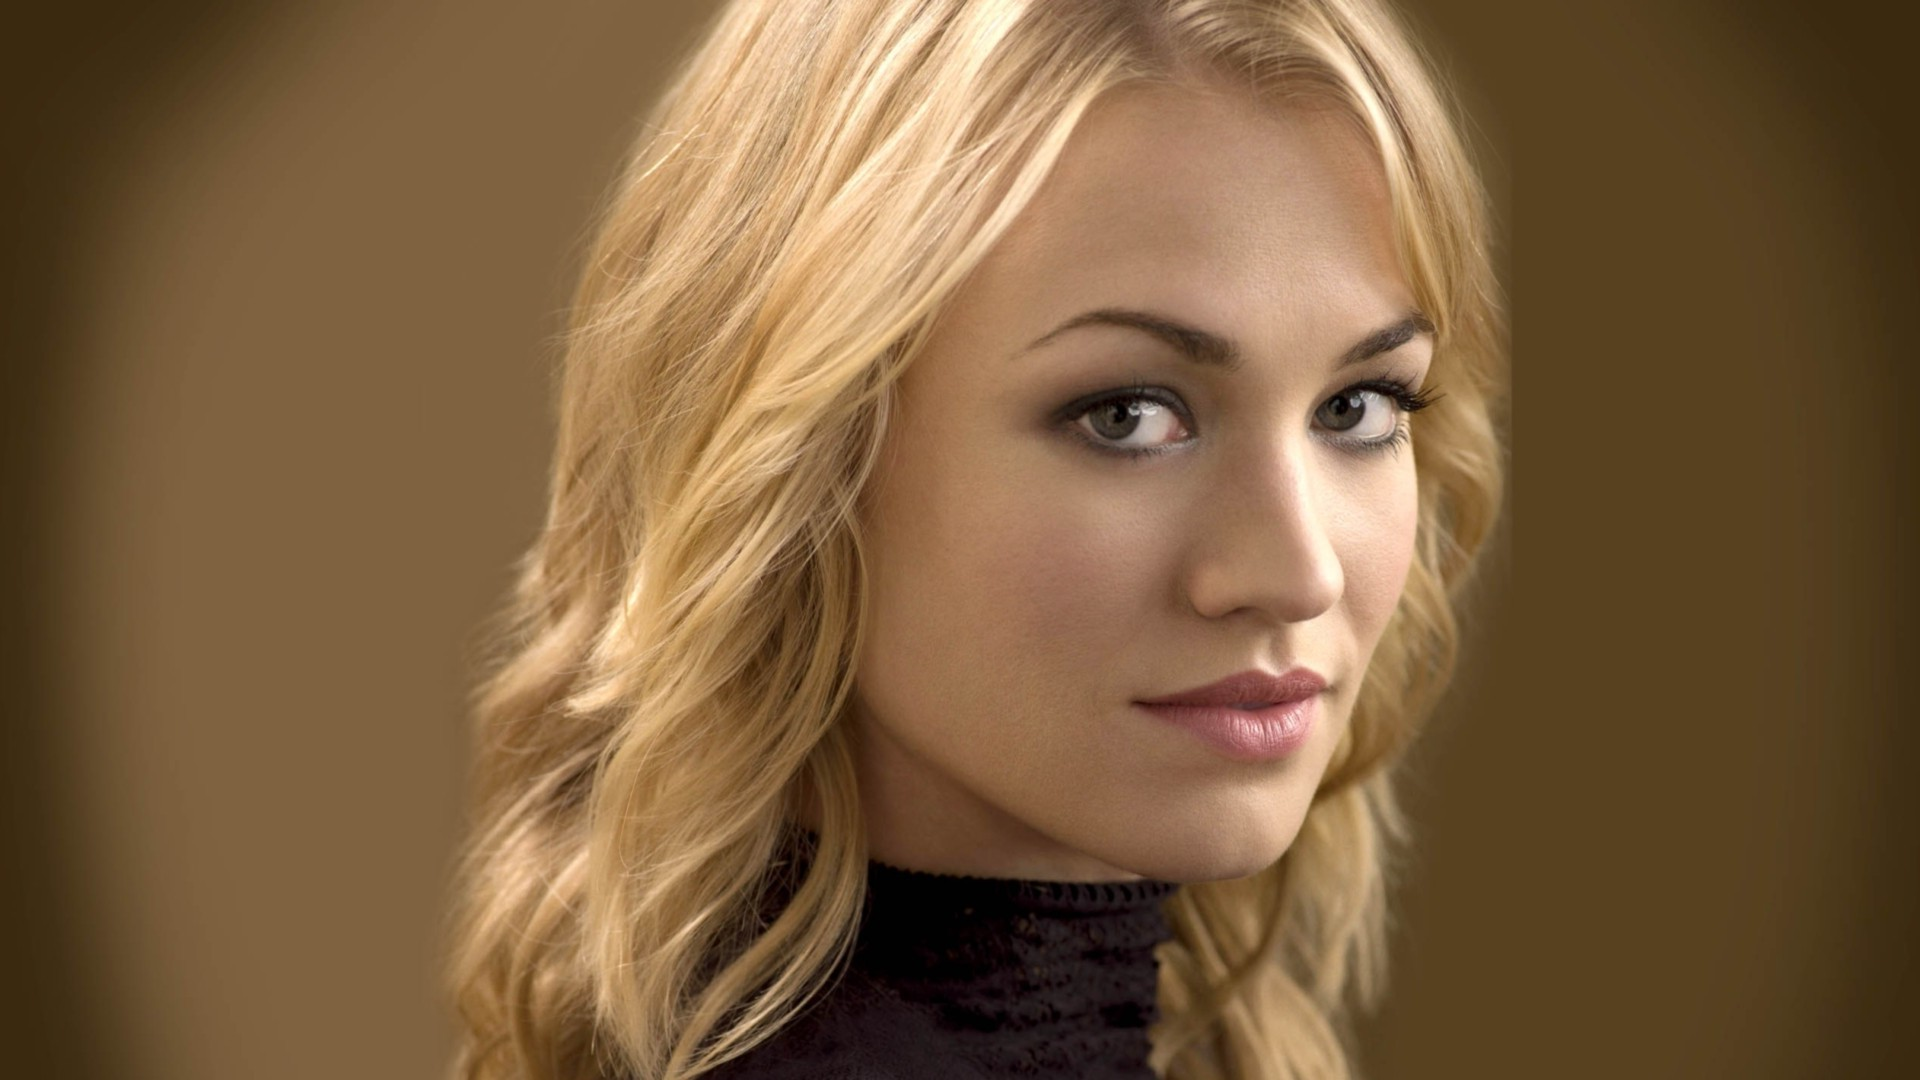 Yvonne Strahovski Wallpapers HD Full HD Pictures 1920x1080